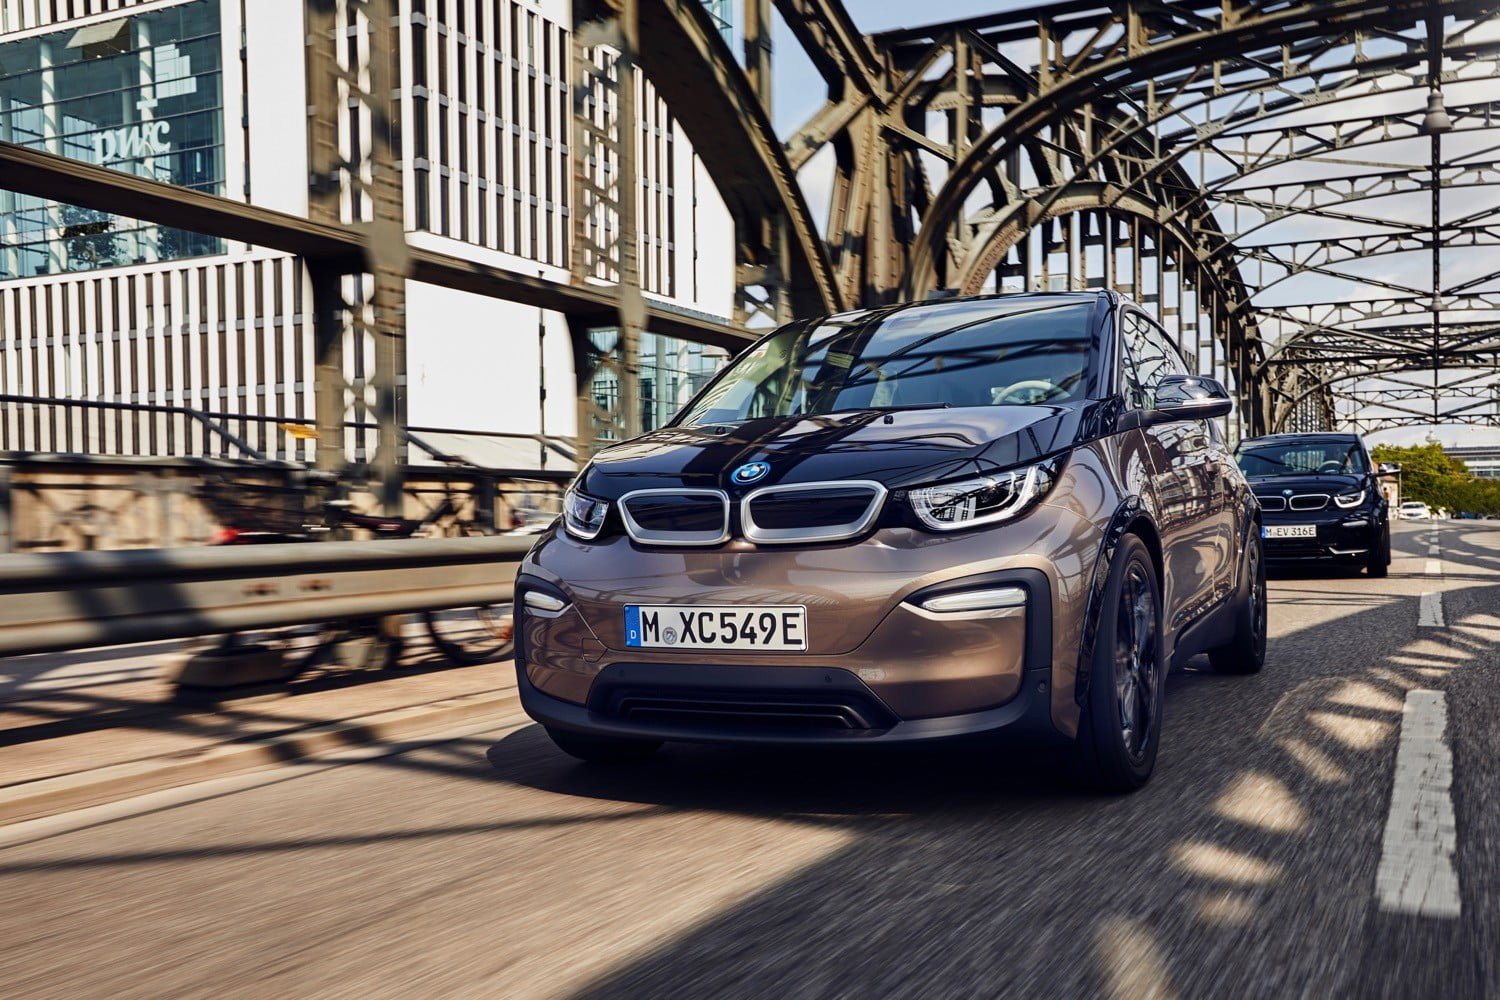 2019 Bmw I3 Electric Car Gets A Bigger Battery Pack Range Boost